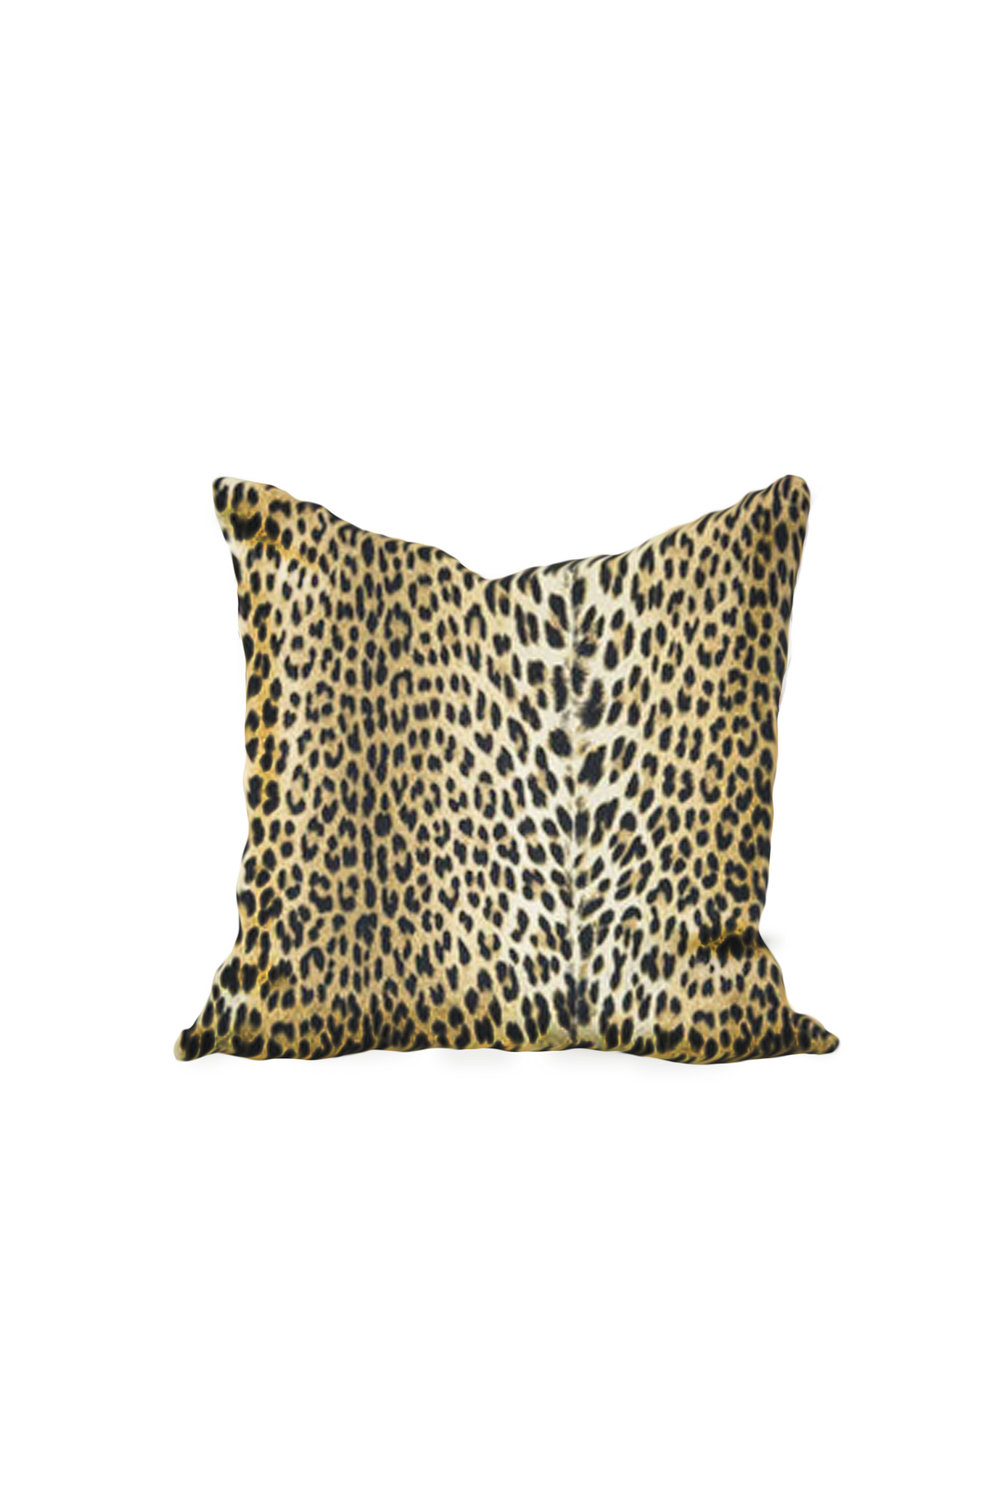 creme cushion leopard print pink navy blue brown cheetah ink decorative linen in cover pillow index animal designer img iconic trendy and